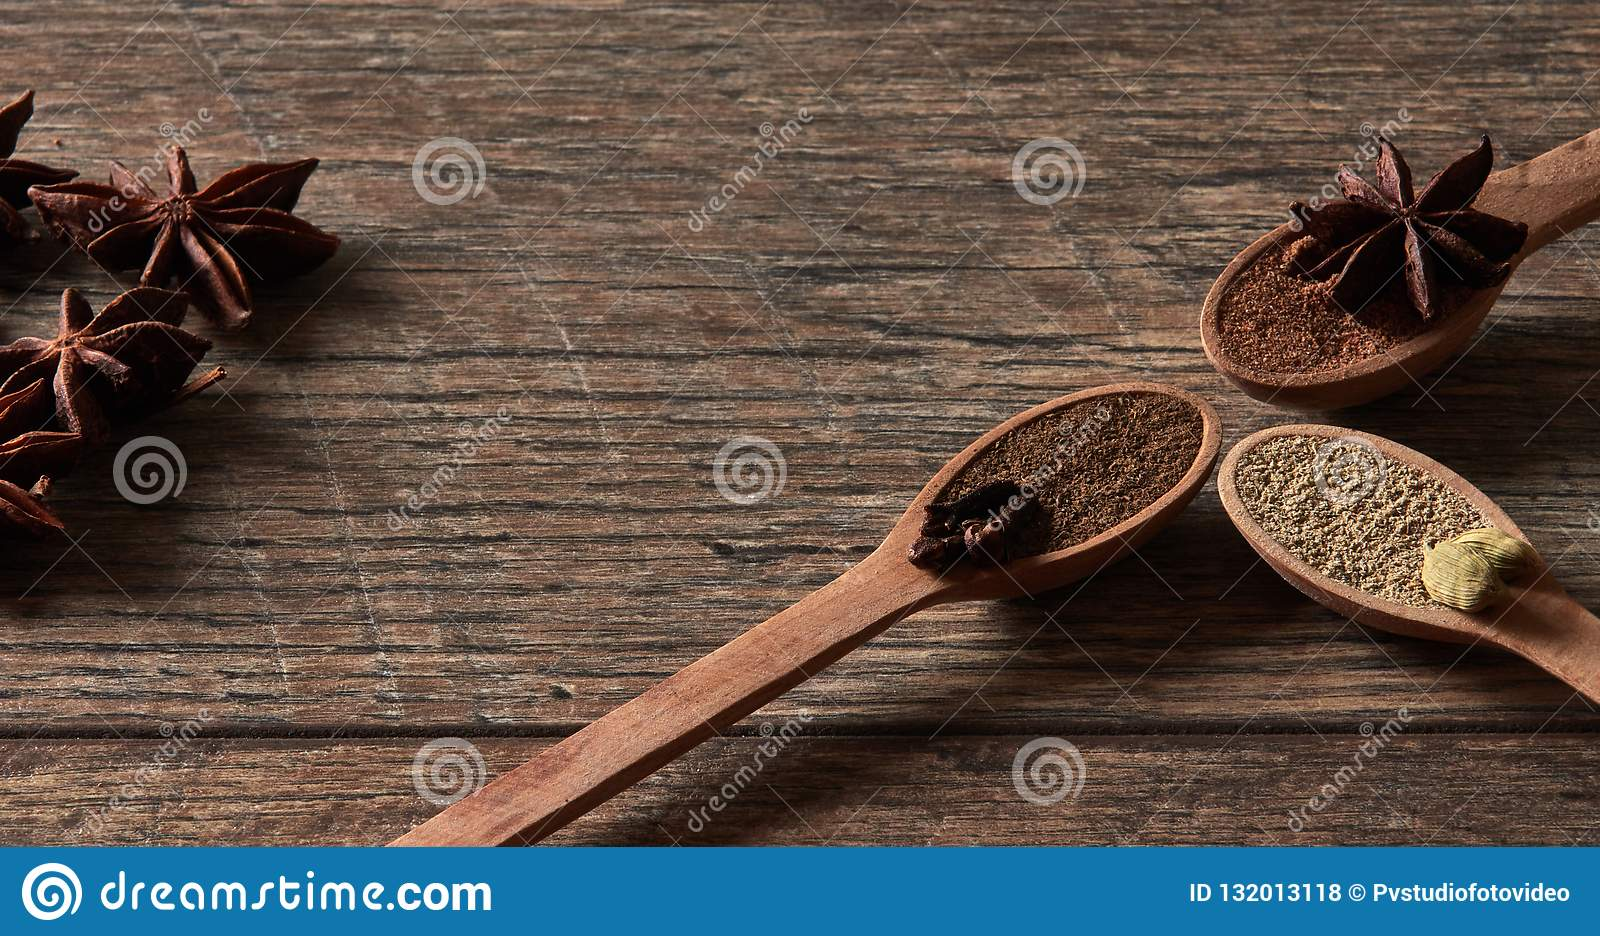 Cardamom, cloves, star anise. Ground spices in wooden spoons.Different types of whole Indian spices in wooden background